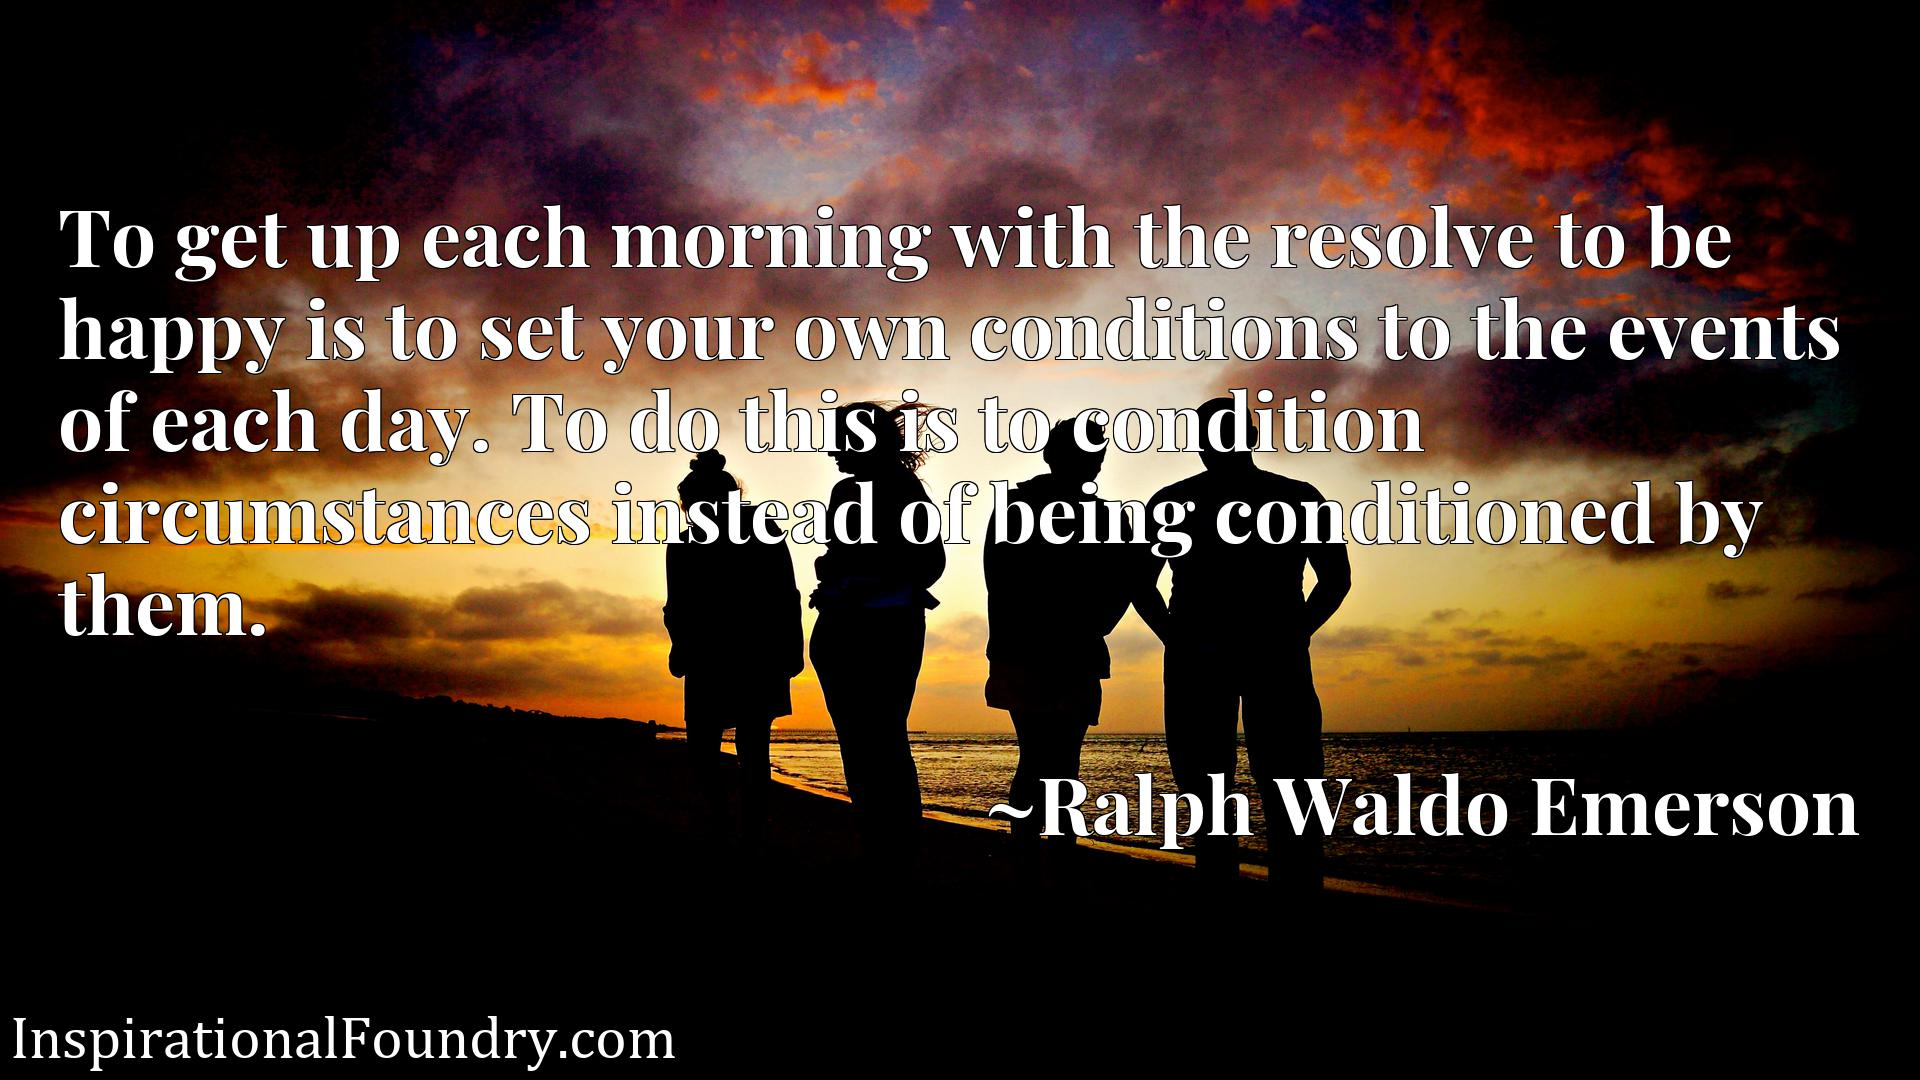 To get up each morning with the resolve to be happy is to set your own conditions to the events of each day. To do this is to condition circumstances instead of being conditioned by them.